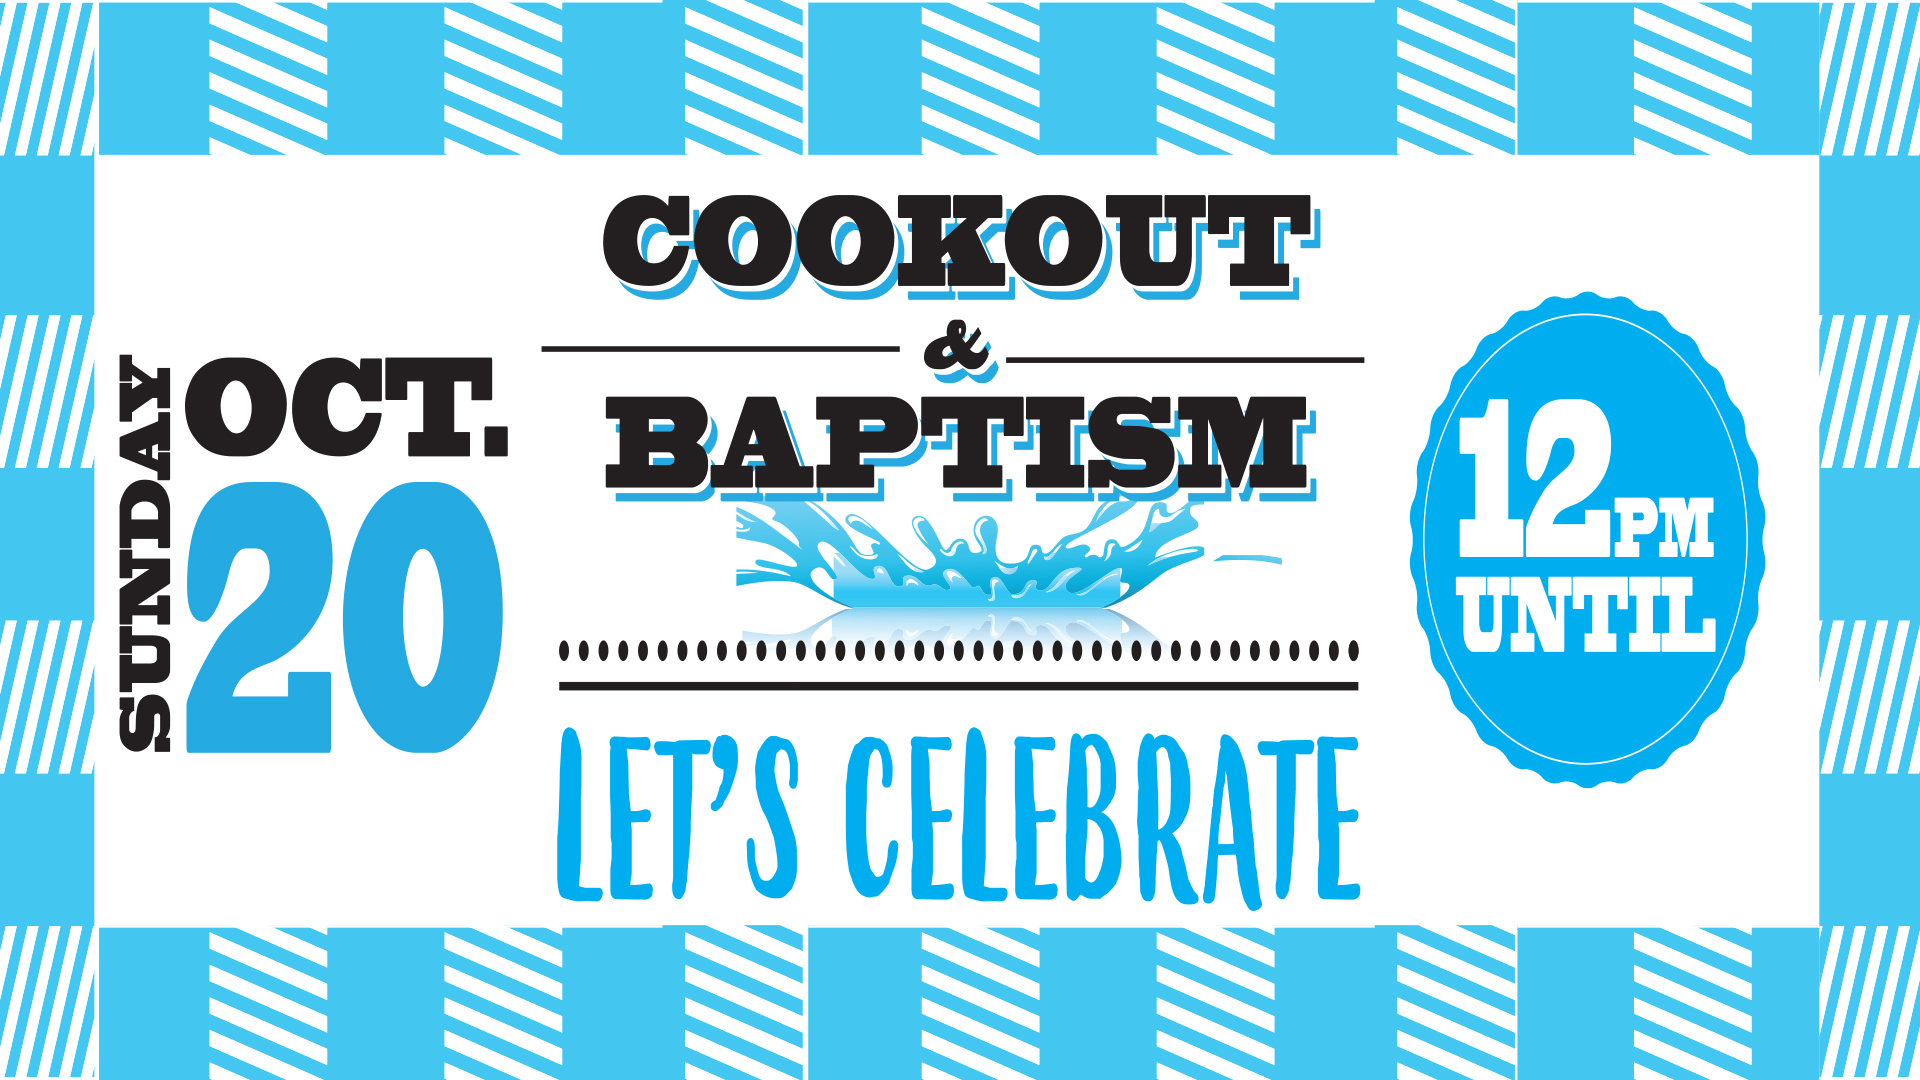 Cookout and Baptism Oct. 20